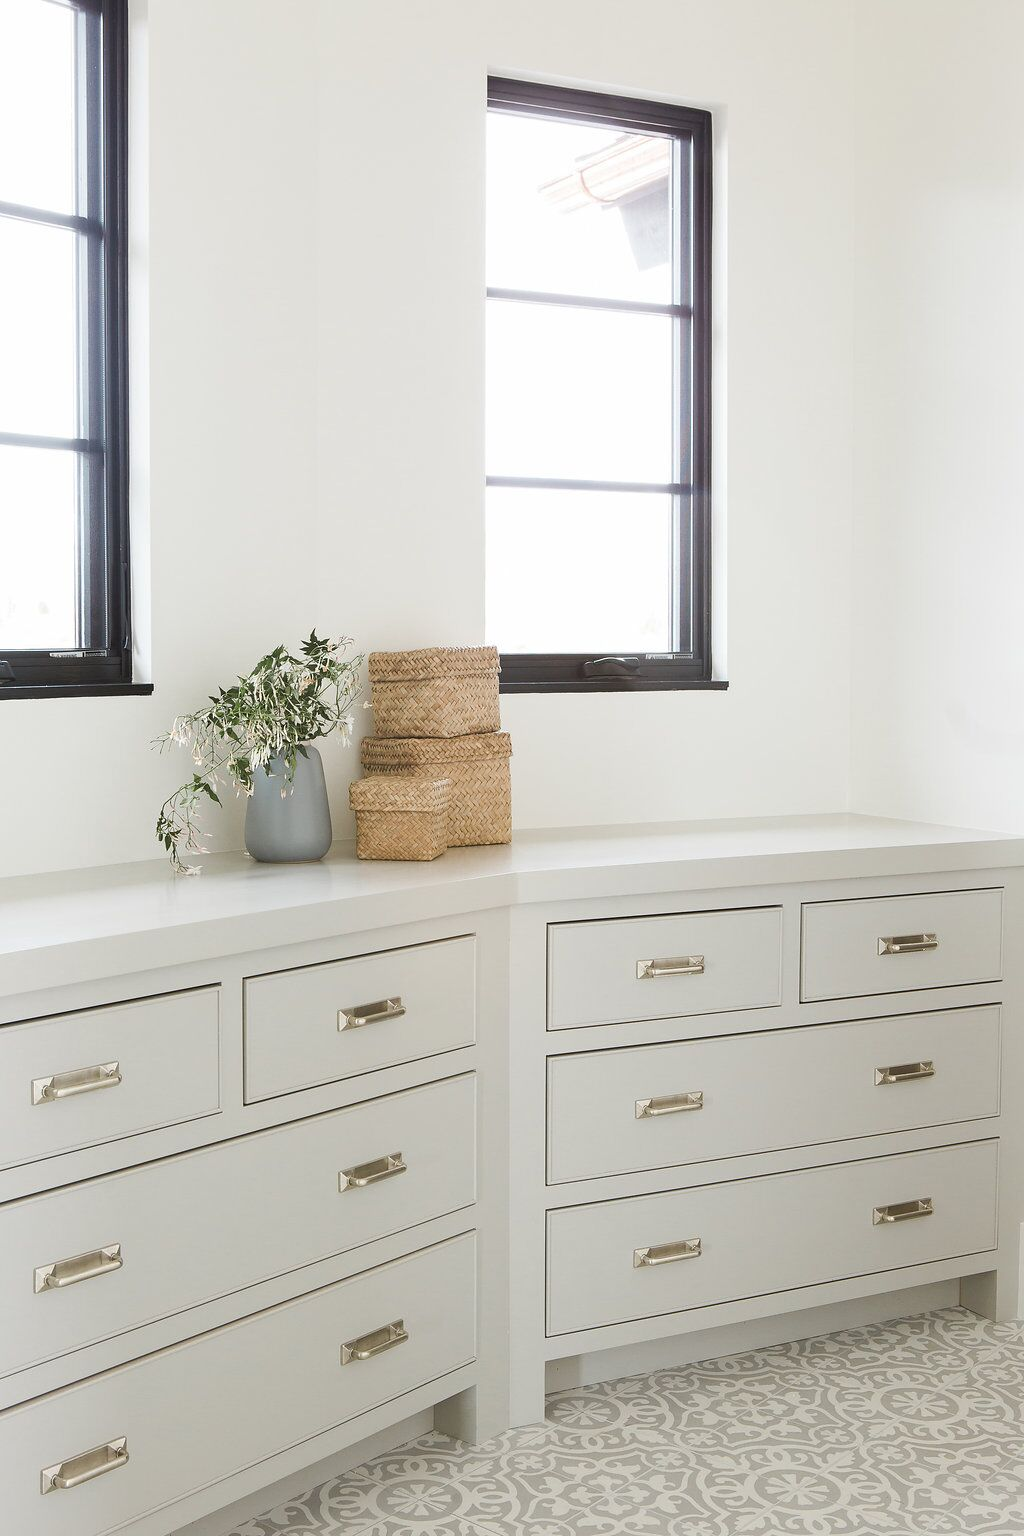 White cabinets in front of two small windows